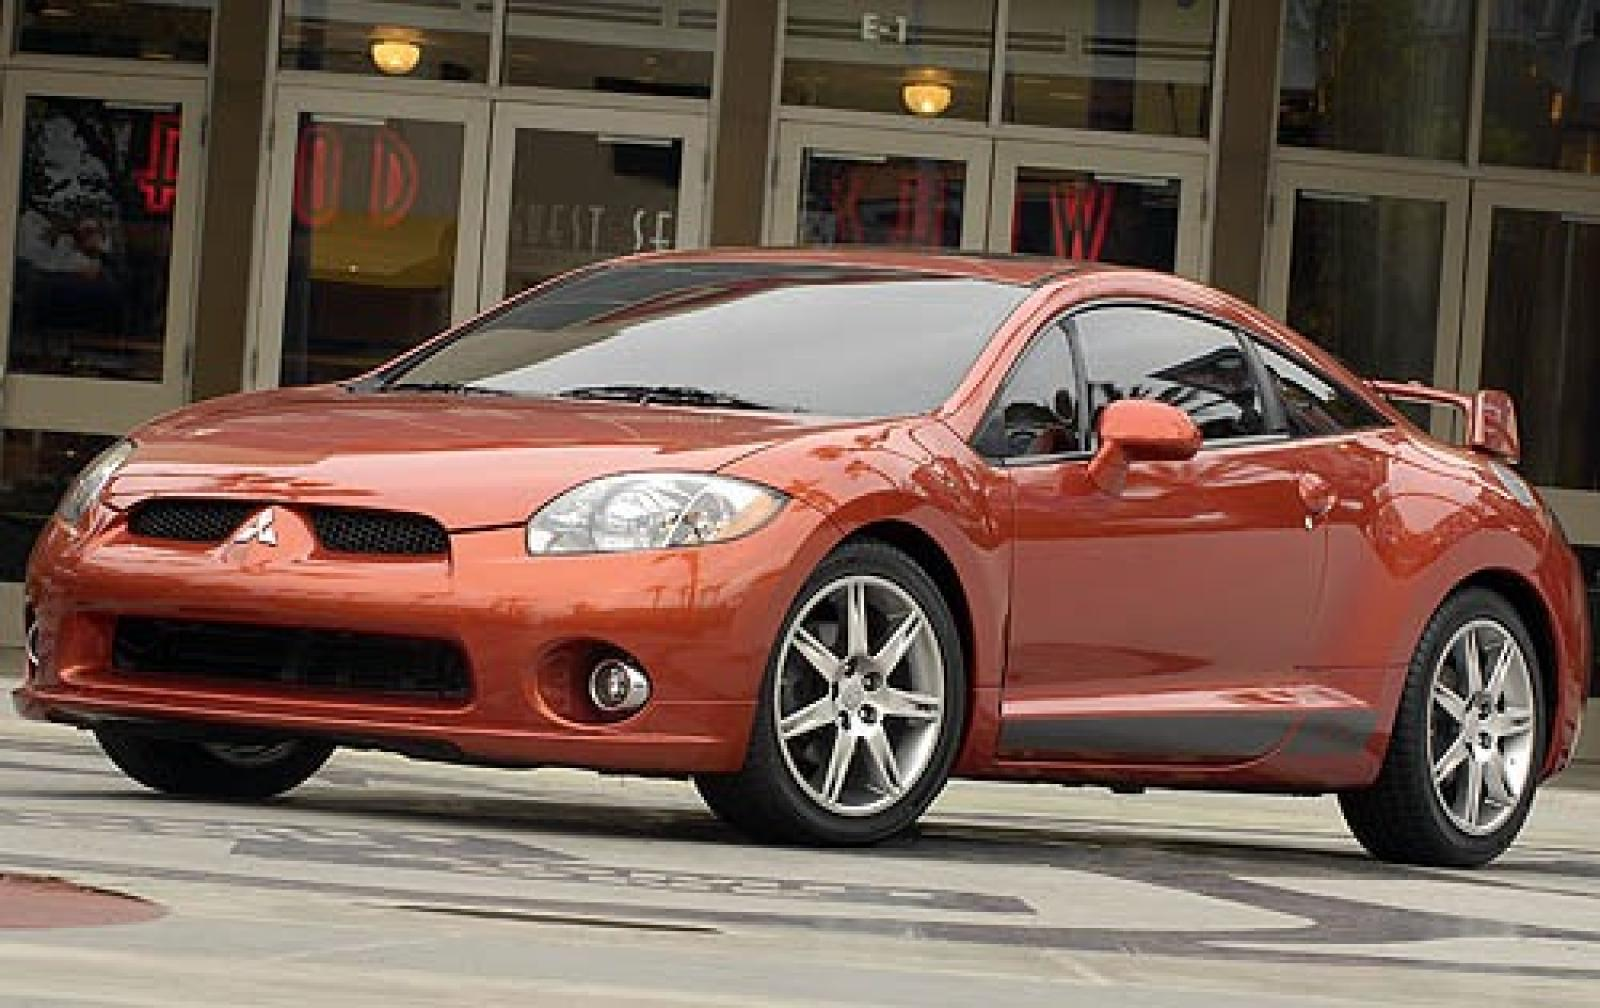 2008 mitsubishi eclipse information and photos zombiedrive. Black Bedroom Furniture Sets. Home Design Ideas